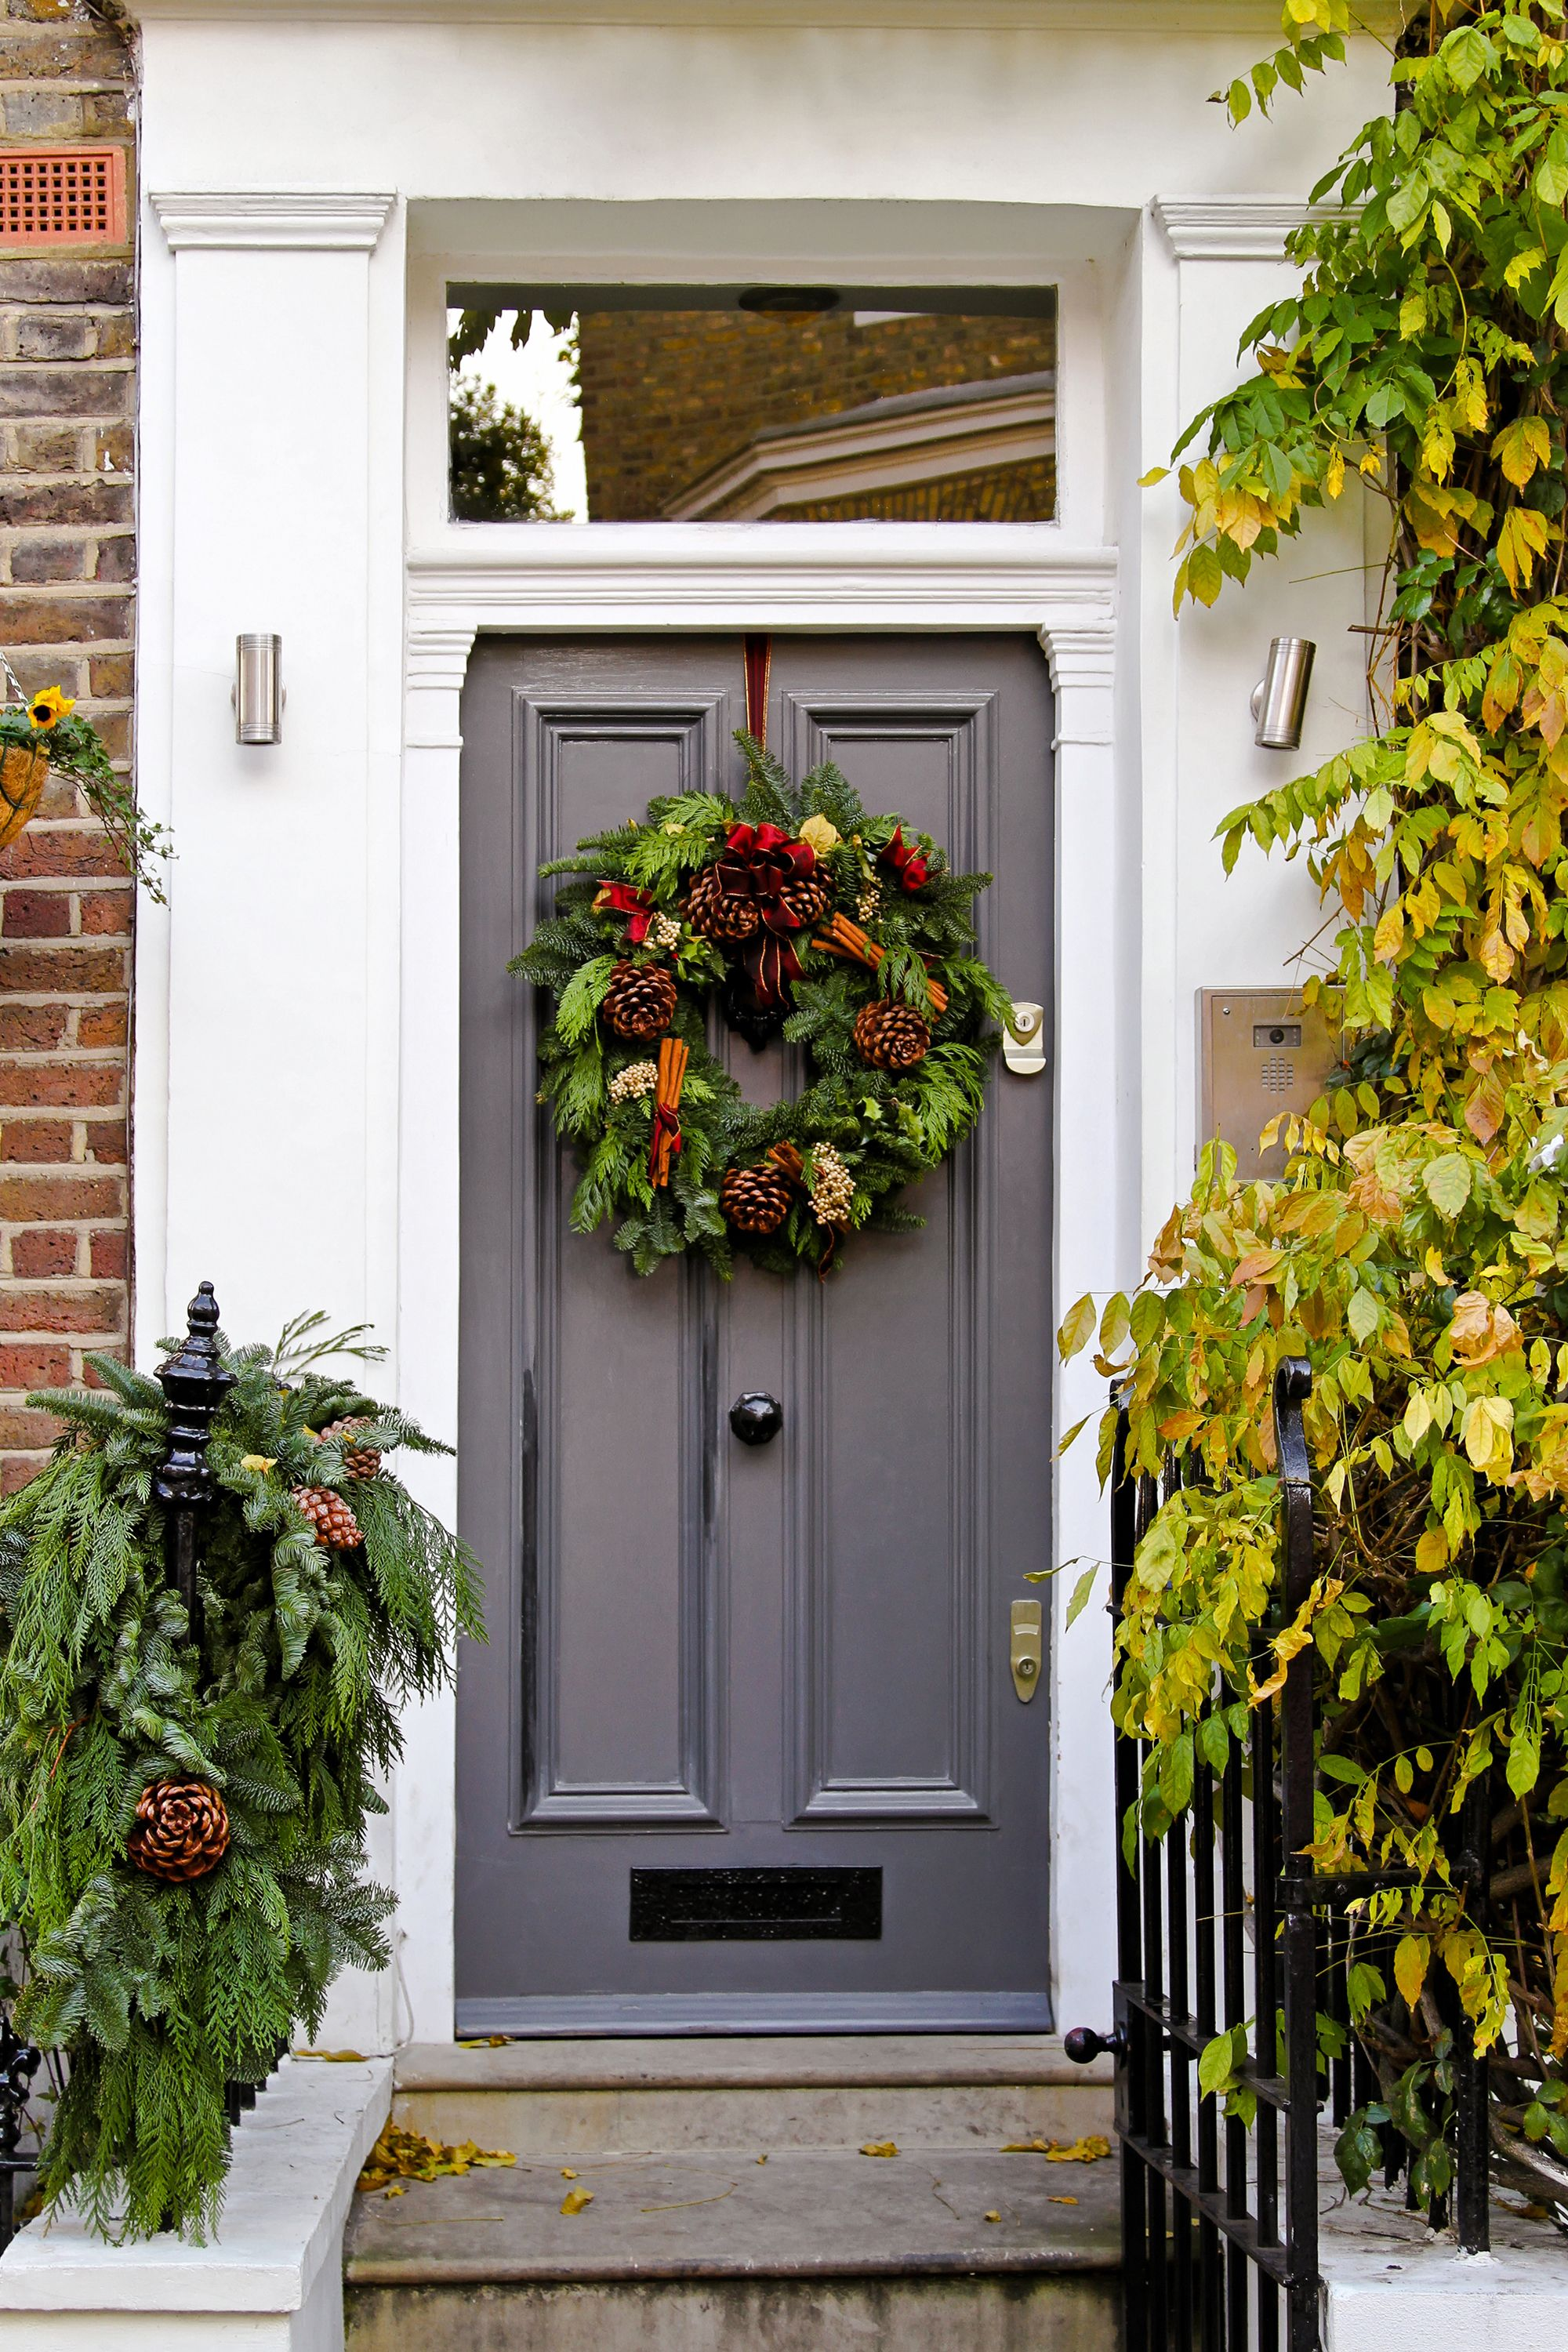 17 of the best Christmas door wreaths to get you in the festive spirit